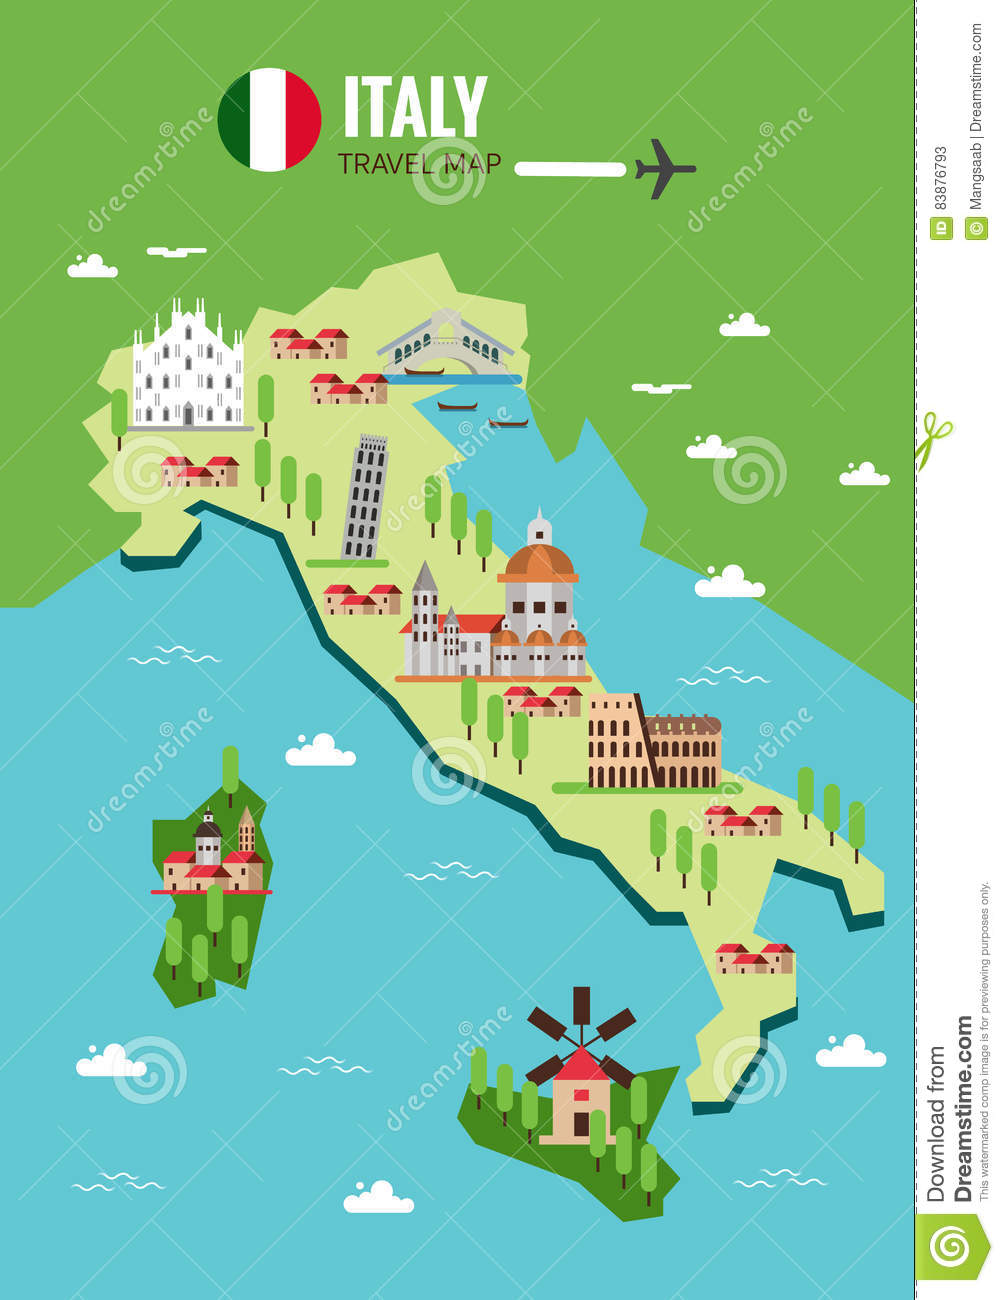 Italy Travel Map Italian Colosseum Milan Venice Sicilia And – Travel Map Of Italy